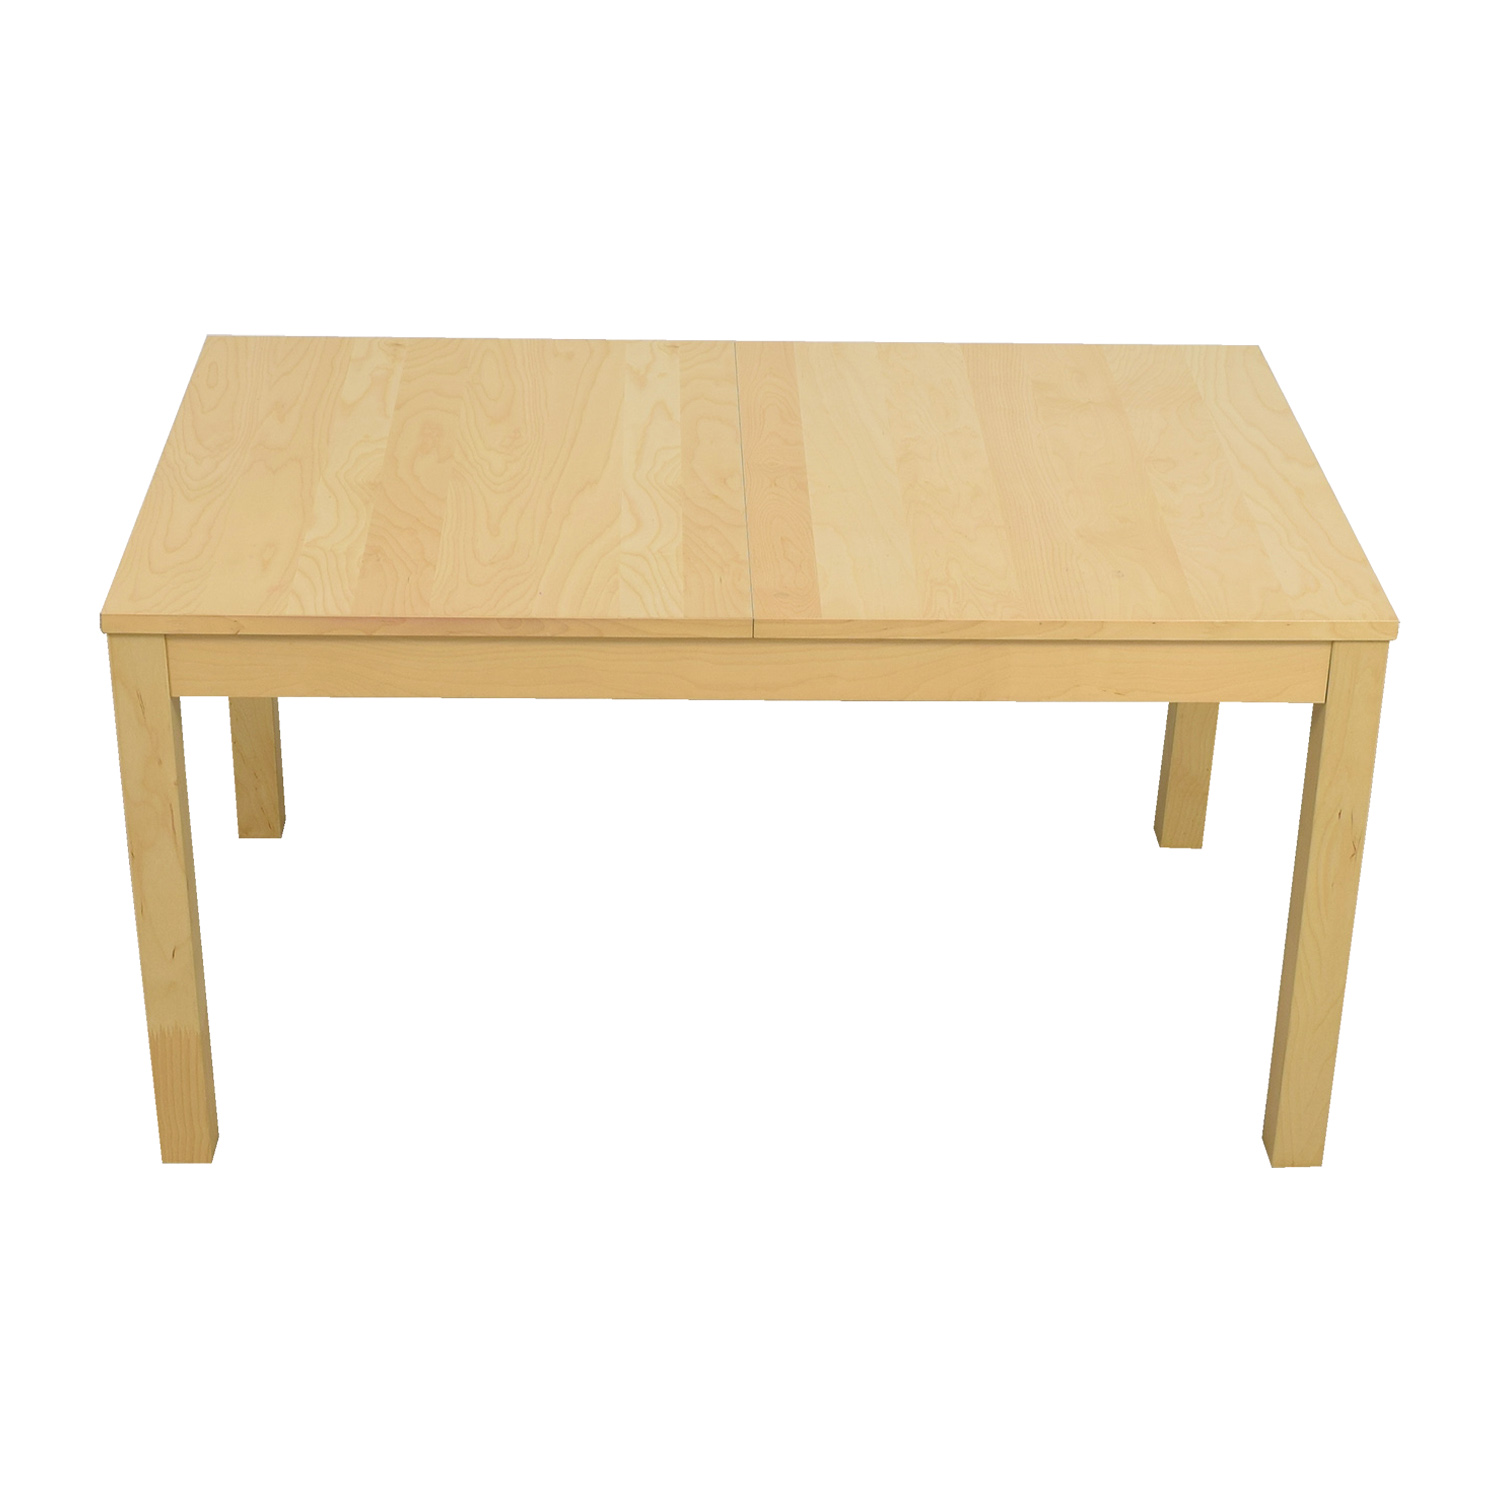 IKEA IKEA Bjursta Beech Veneer Table with Pullout Extentions